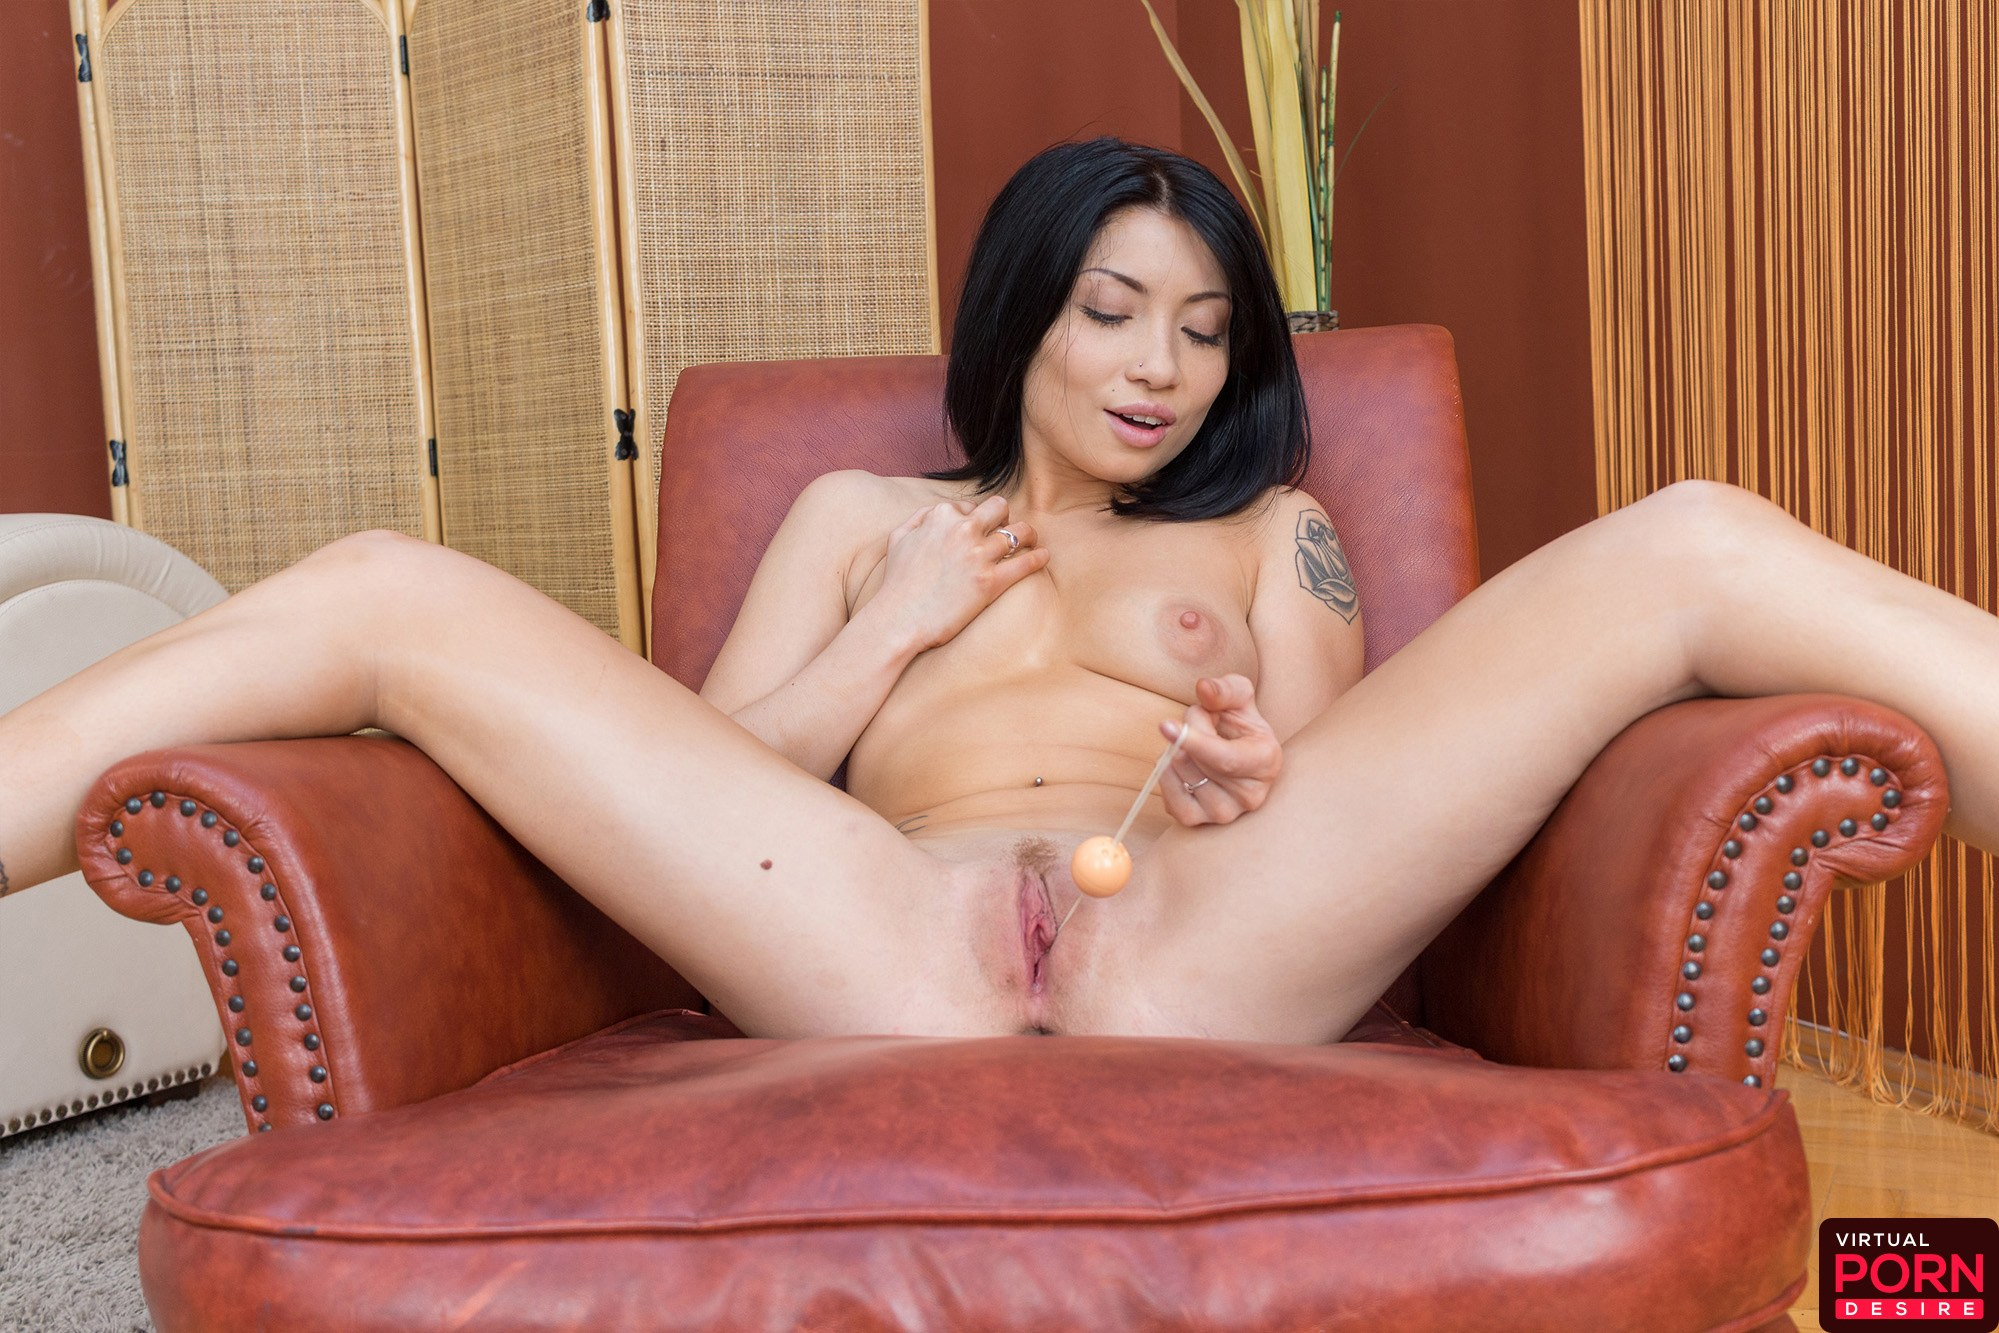 Meaghan recommend POV cum compilation asian young